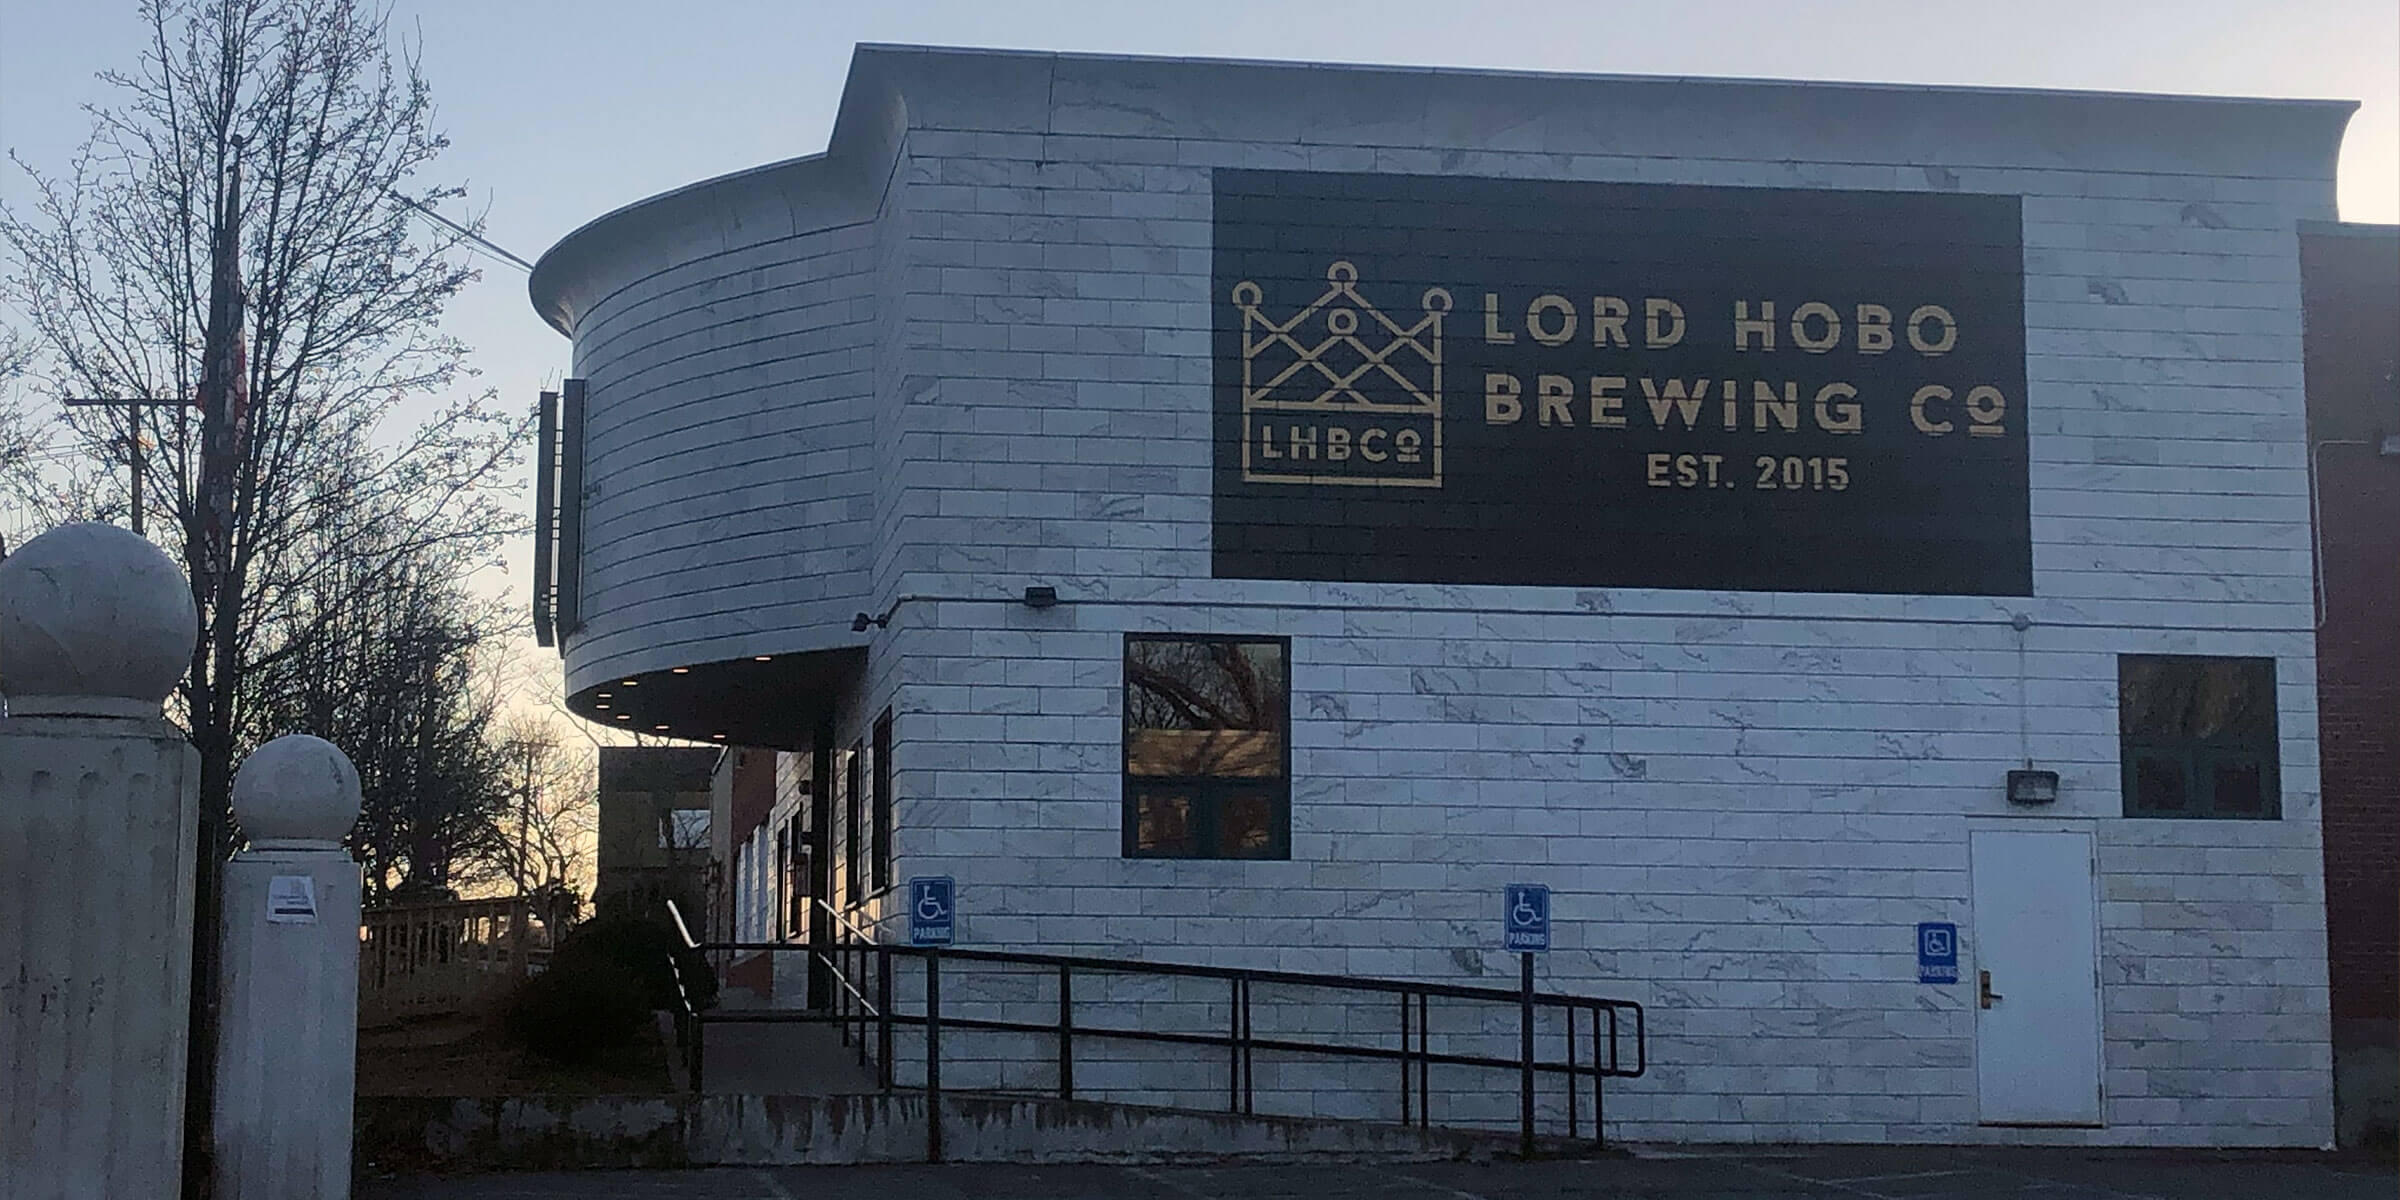 Outside the Entrance to the Lord Hobo Brewing Co. in Woburn, Massachusetts